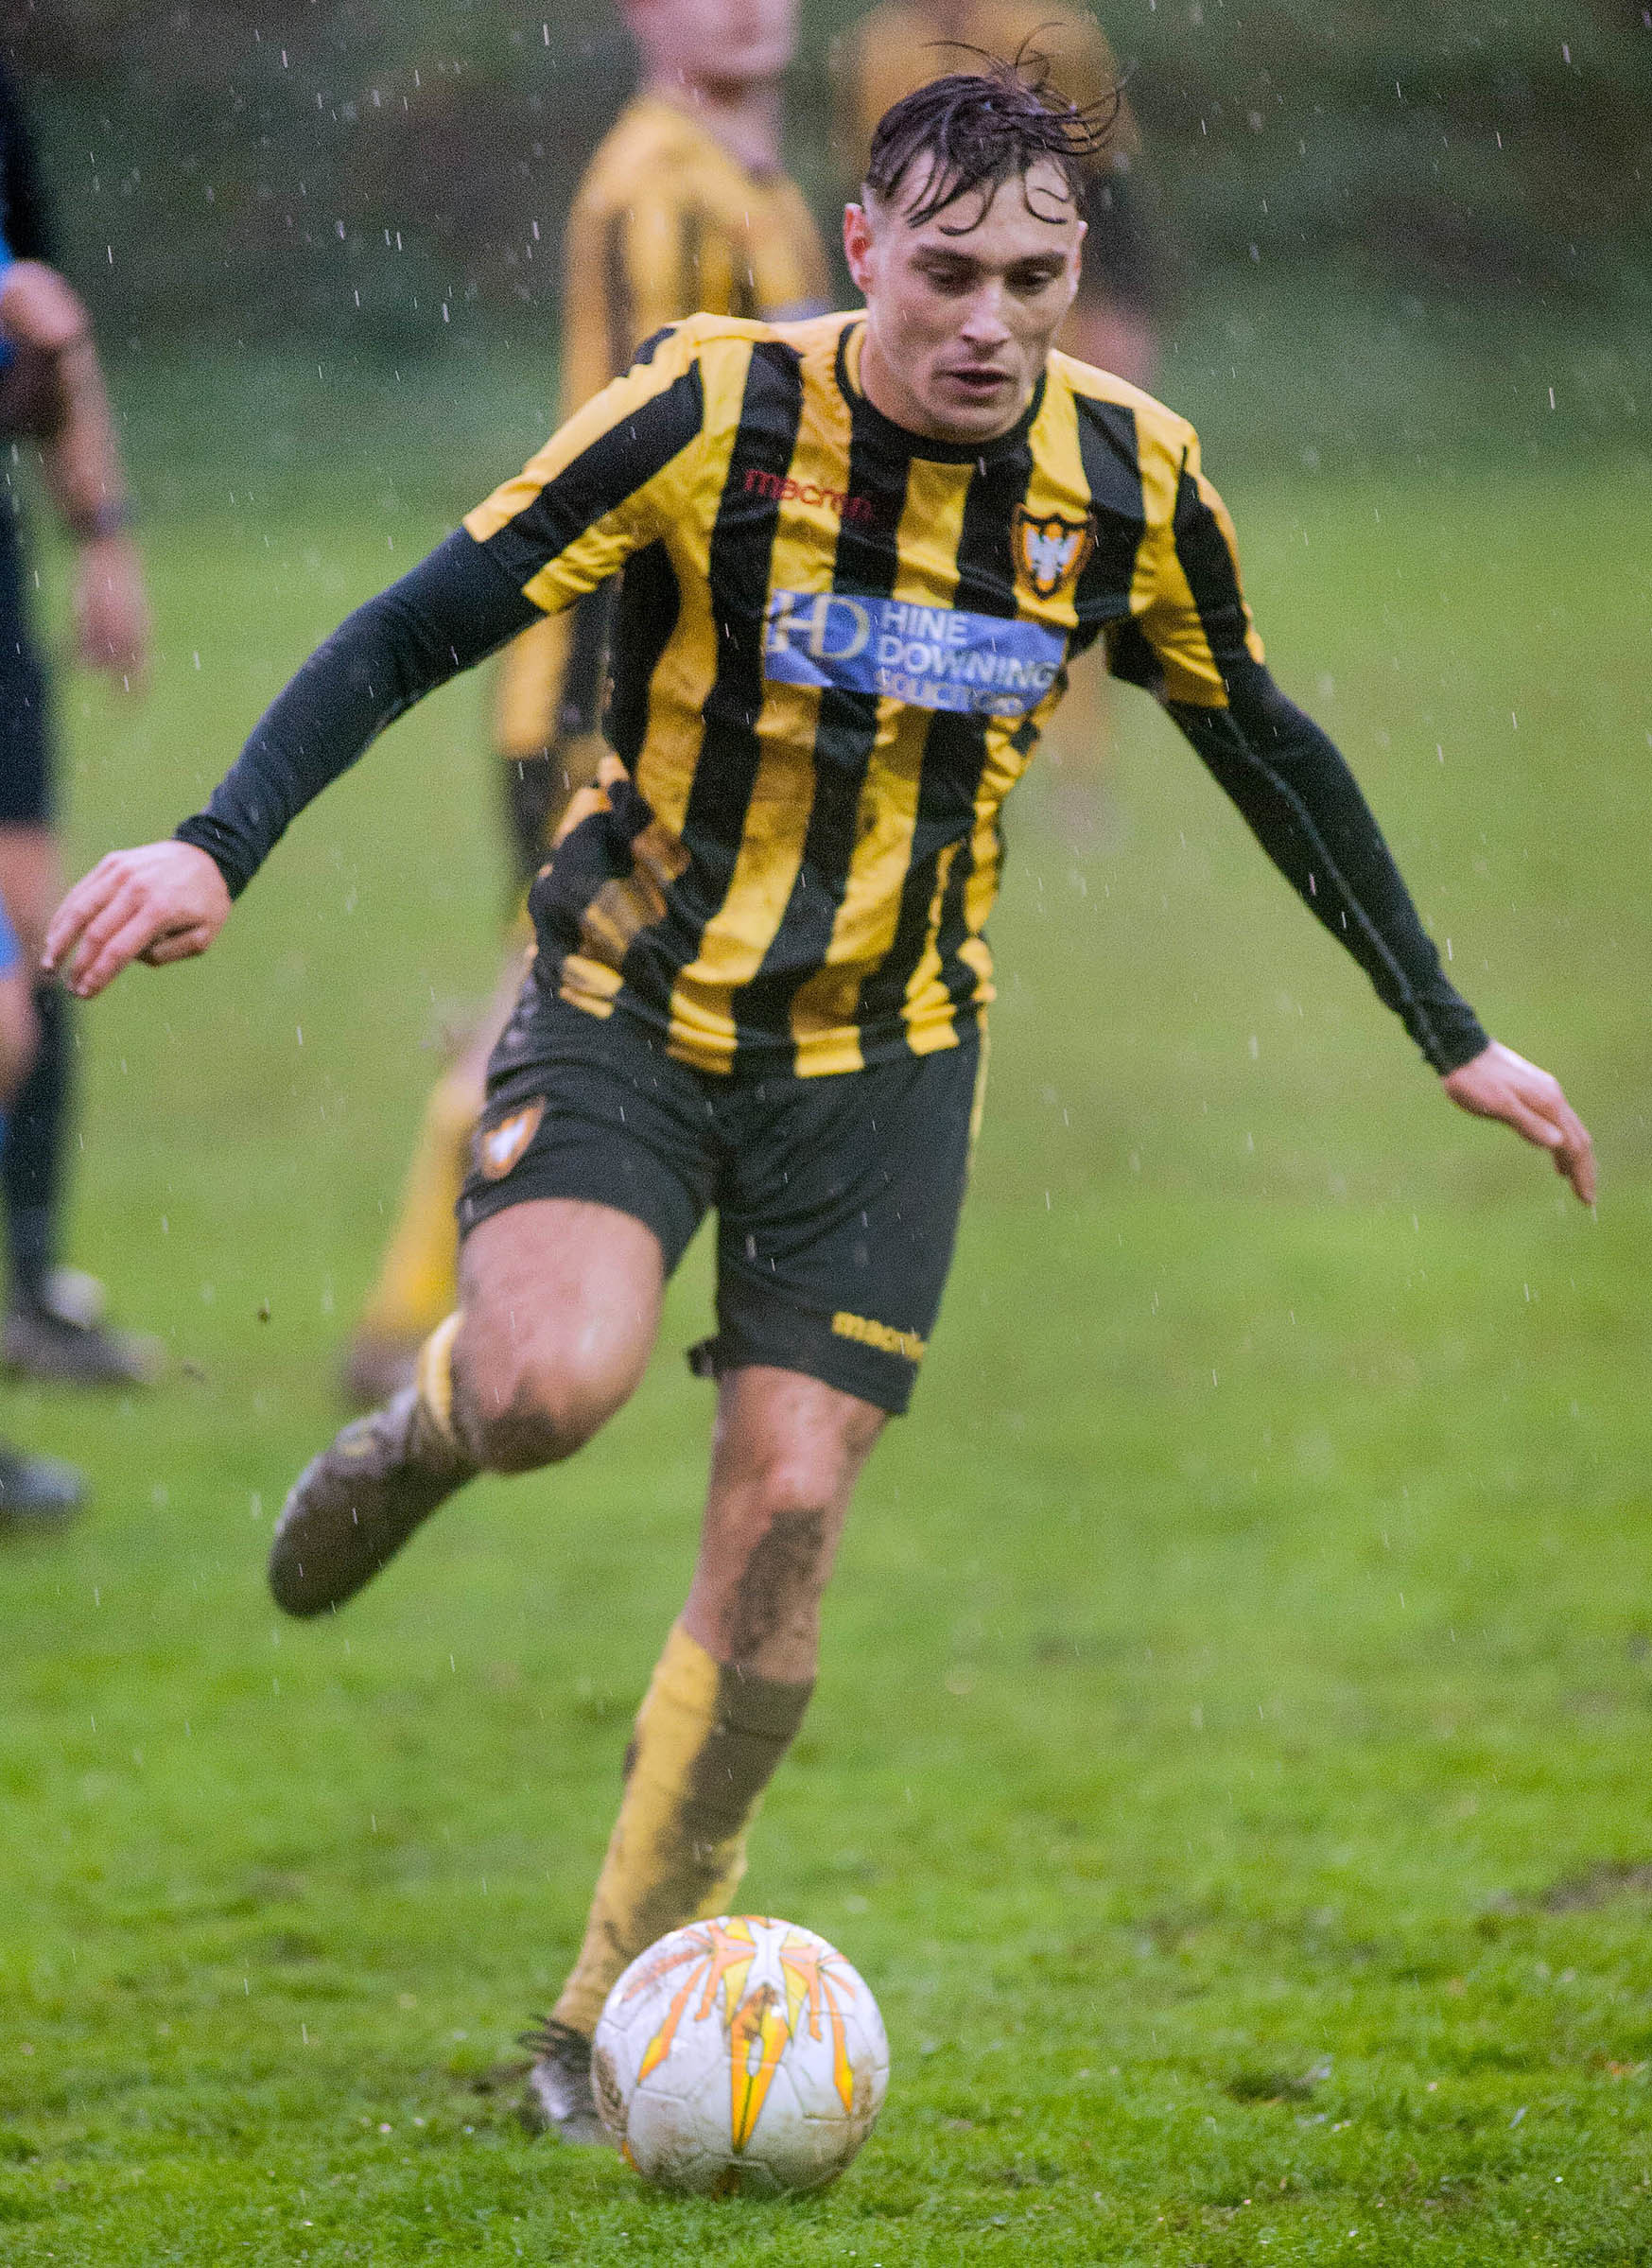 Luke Brabyn scored two goals in Falmouth's 4-0 win over Launceston on Saturday. Picture by Colin Higgs